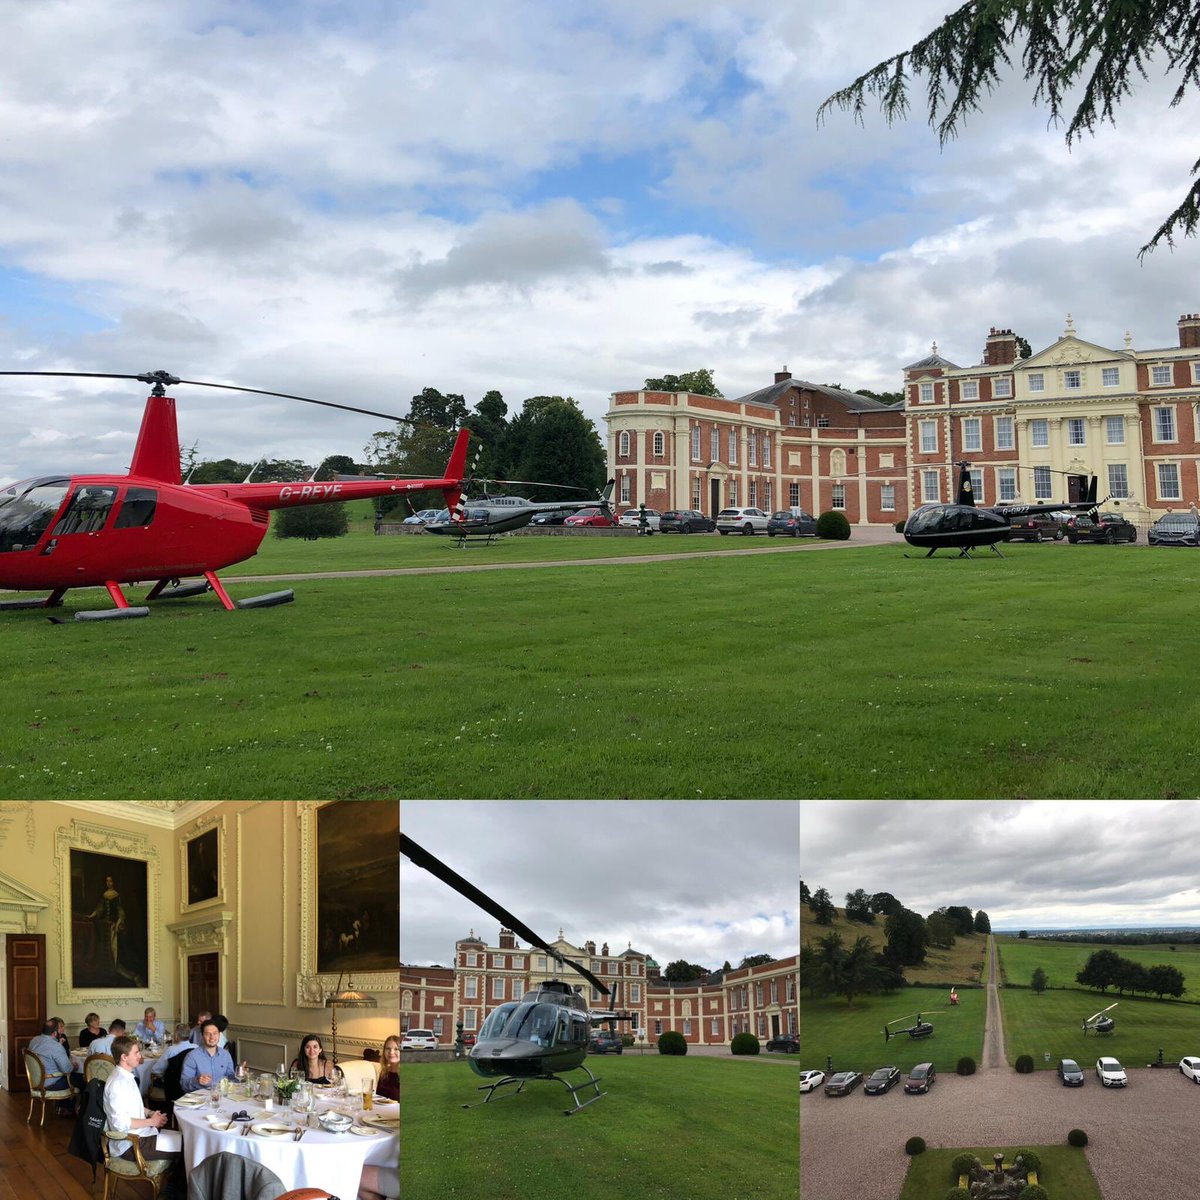 Thanks to @hawkstone_hall for hosting us yesterday! As always, a highly rated and excellent place to visit!  . #b206 #r44 #nottingham #hawkstone #flyout #lunch #privatesite #aviation #instagramaviation #charter #helicopter